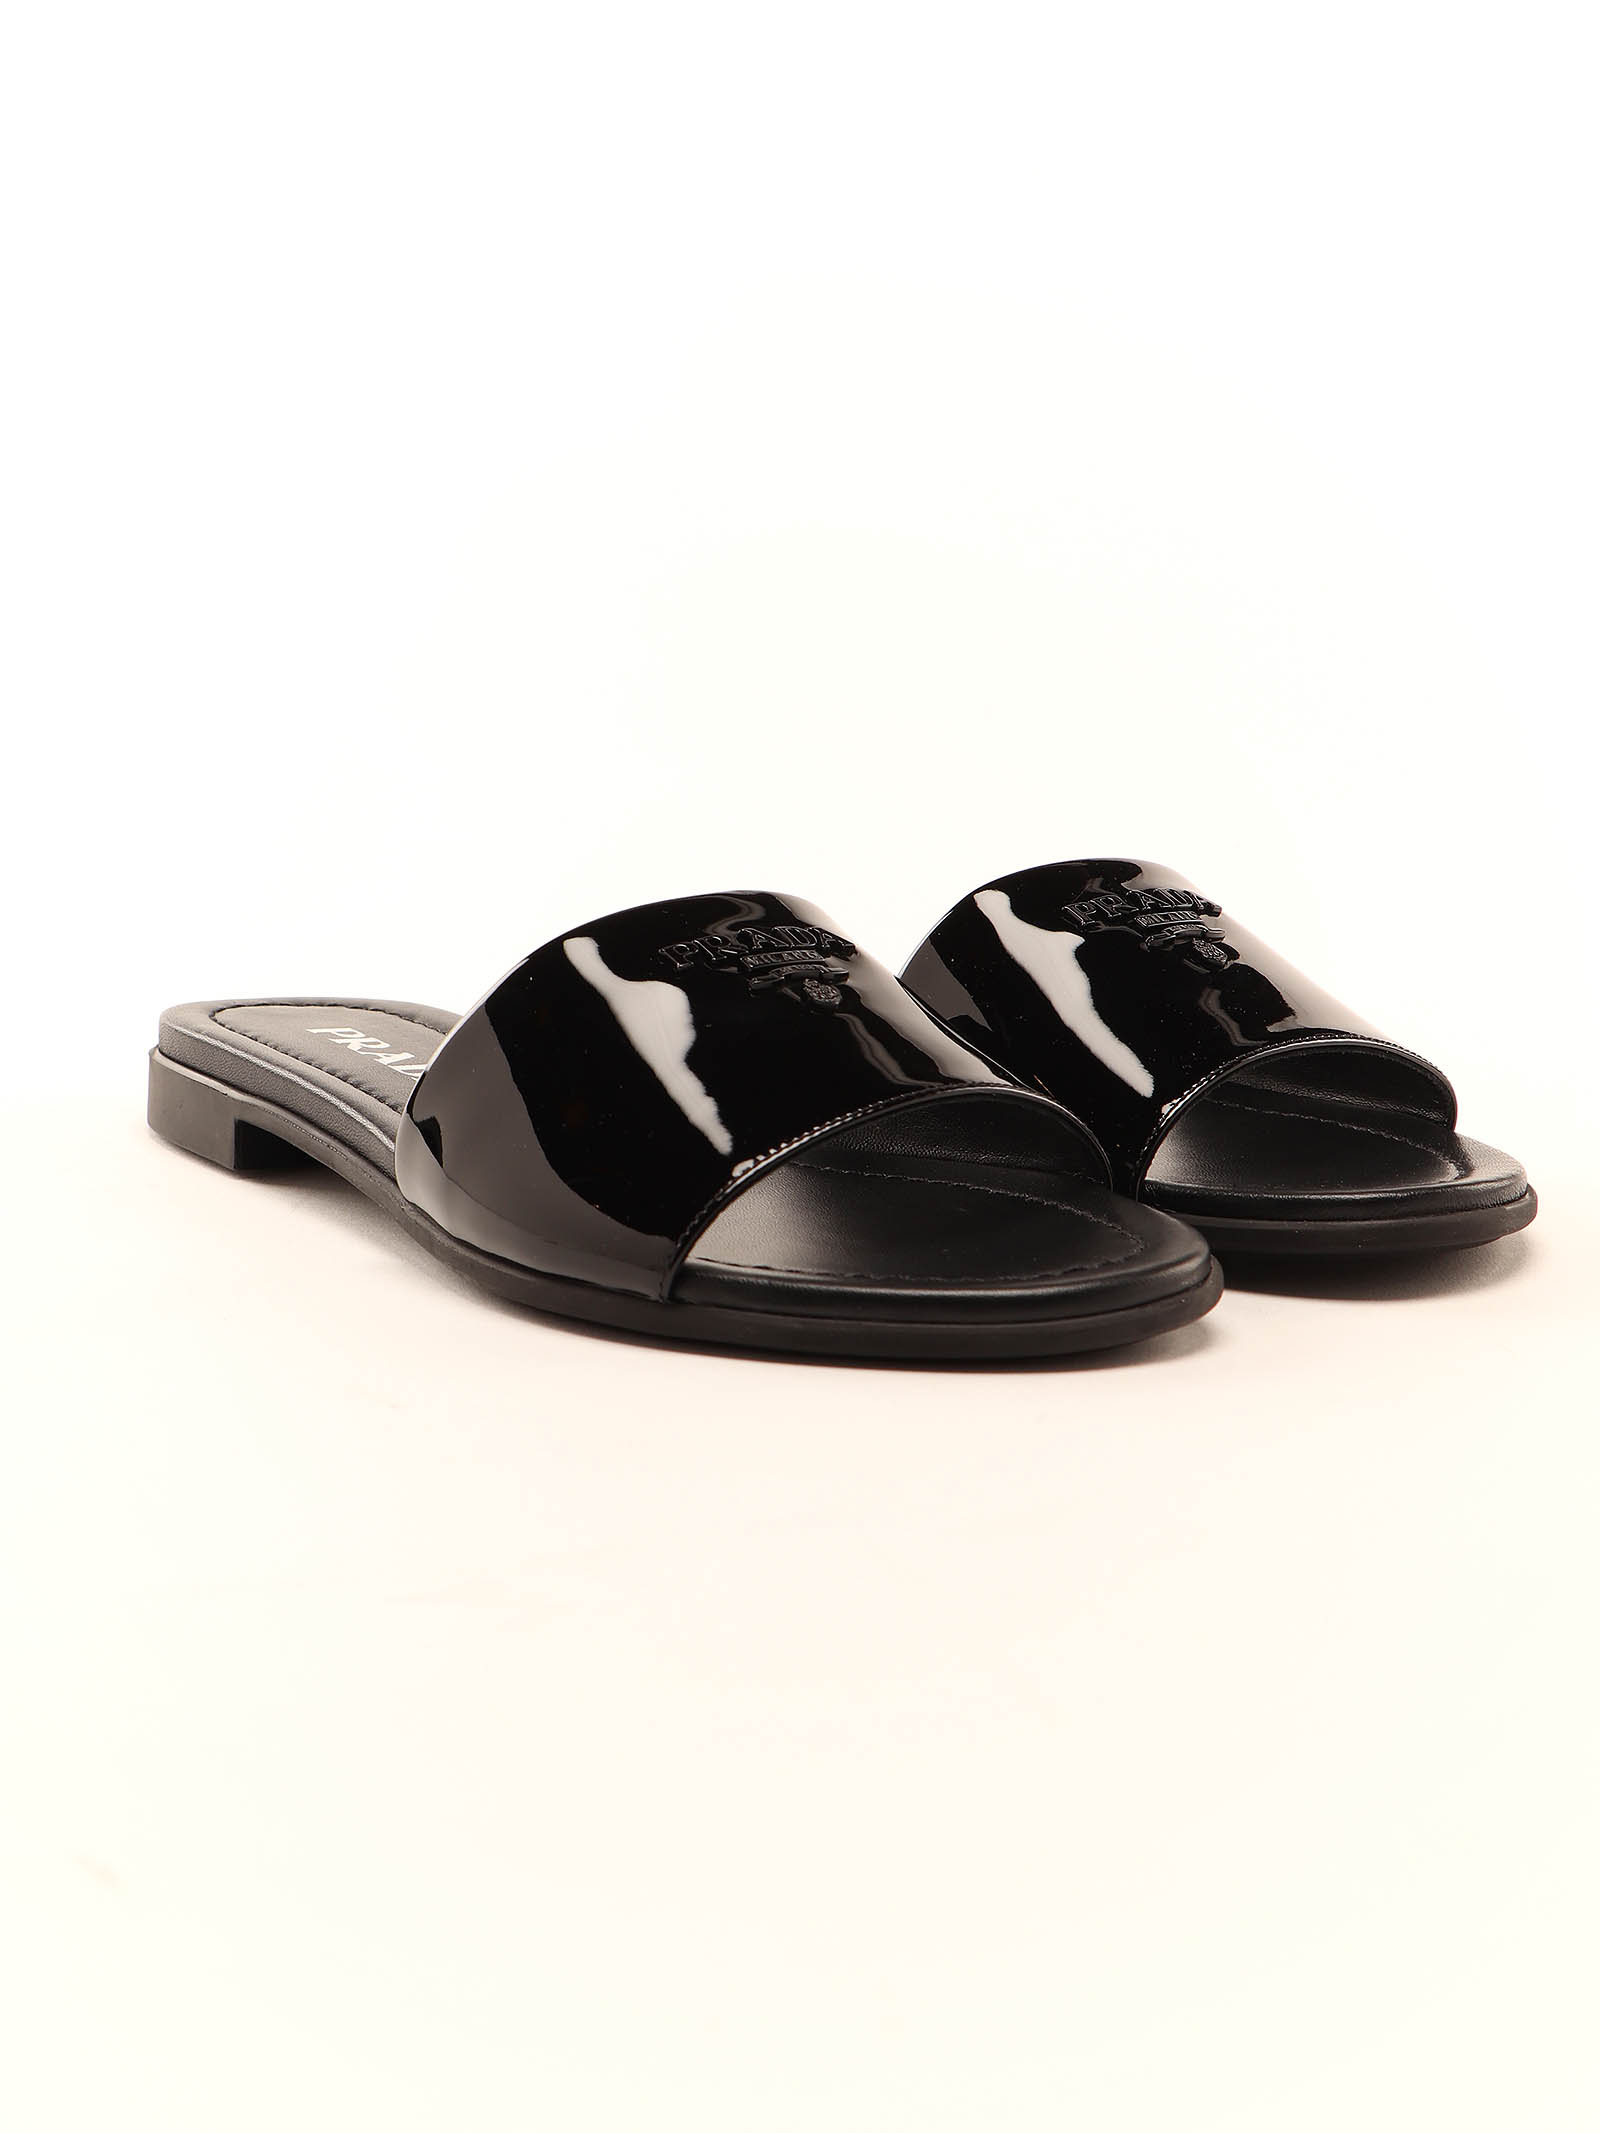 Picture of Prada | Sandal Patent